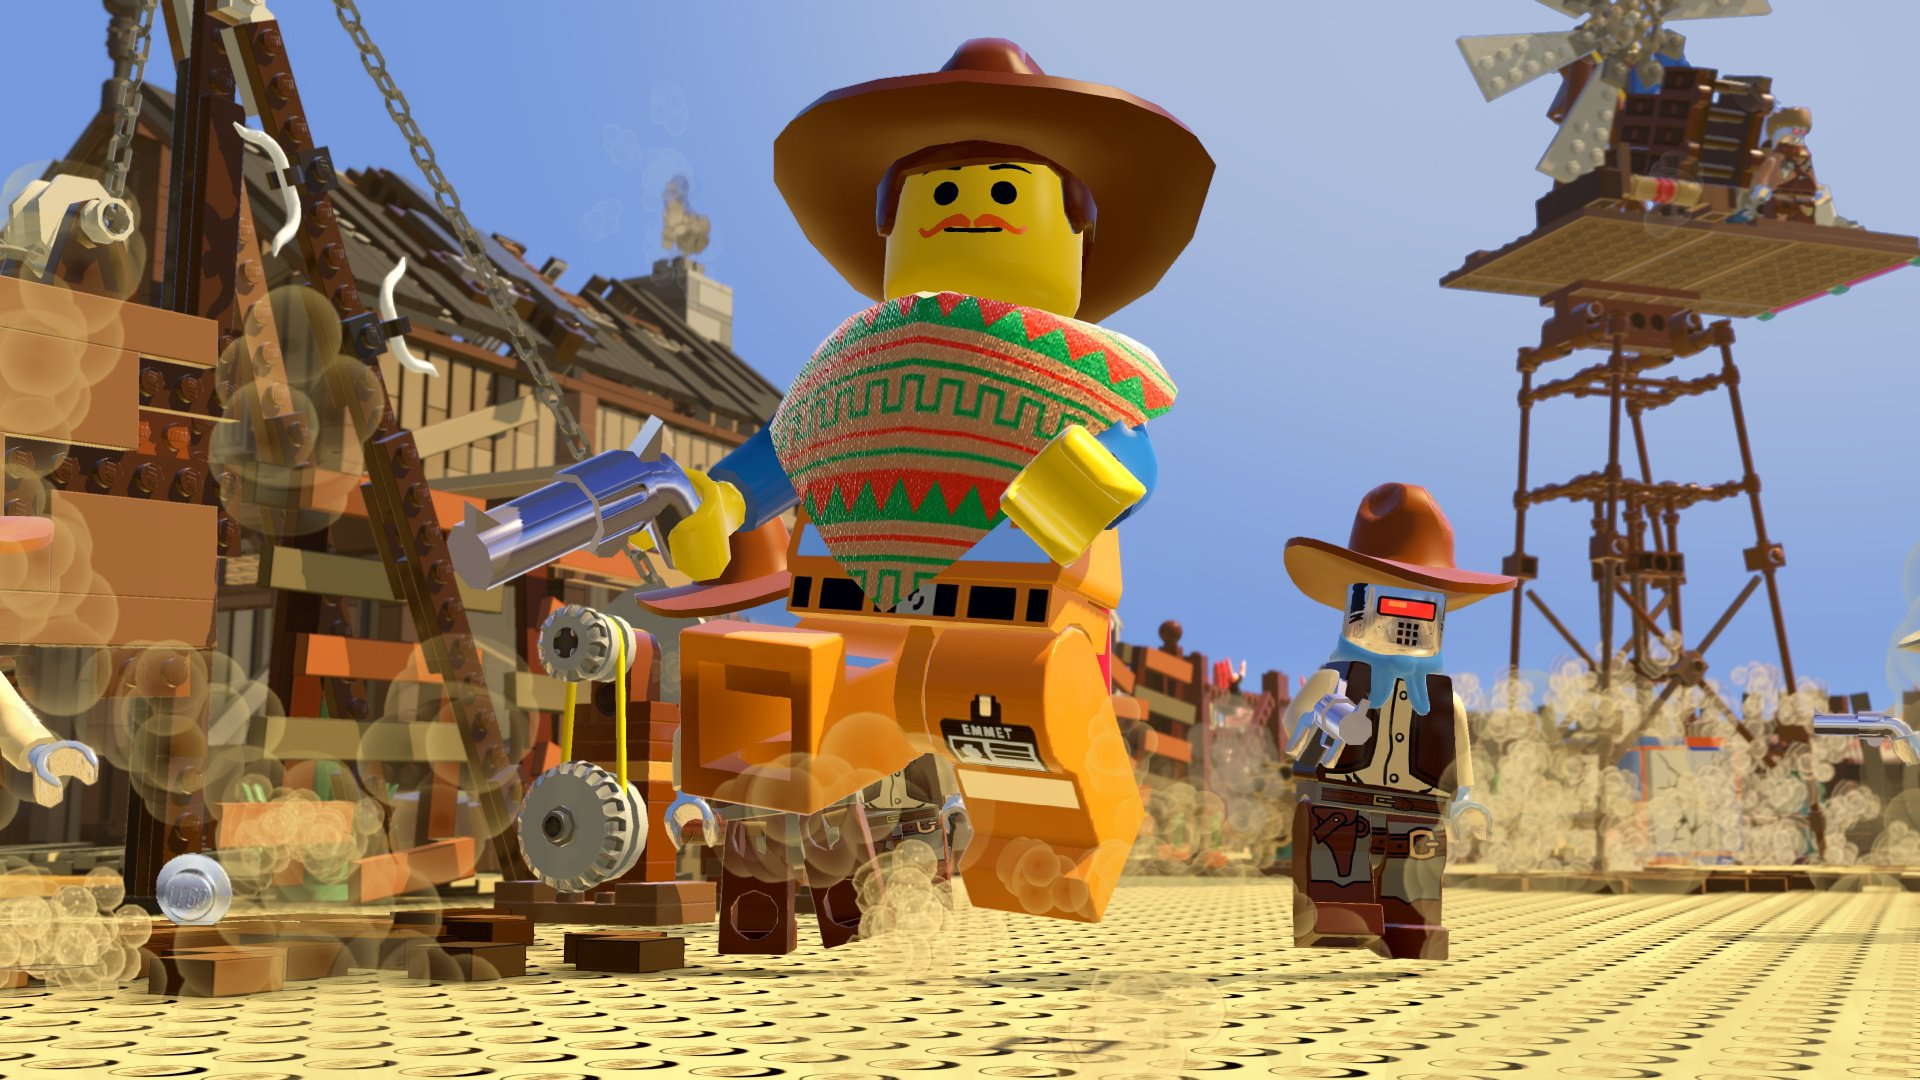 The LEGO Movie Videogame (PS4 / PlayStation 4) Screenshots